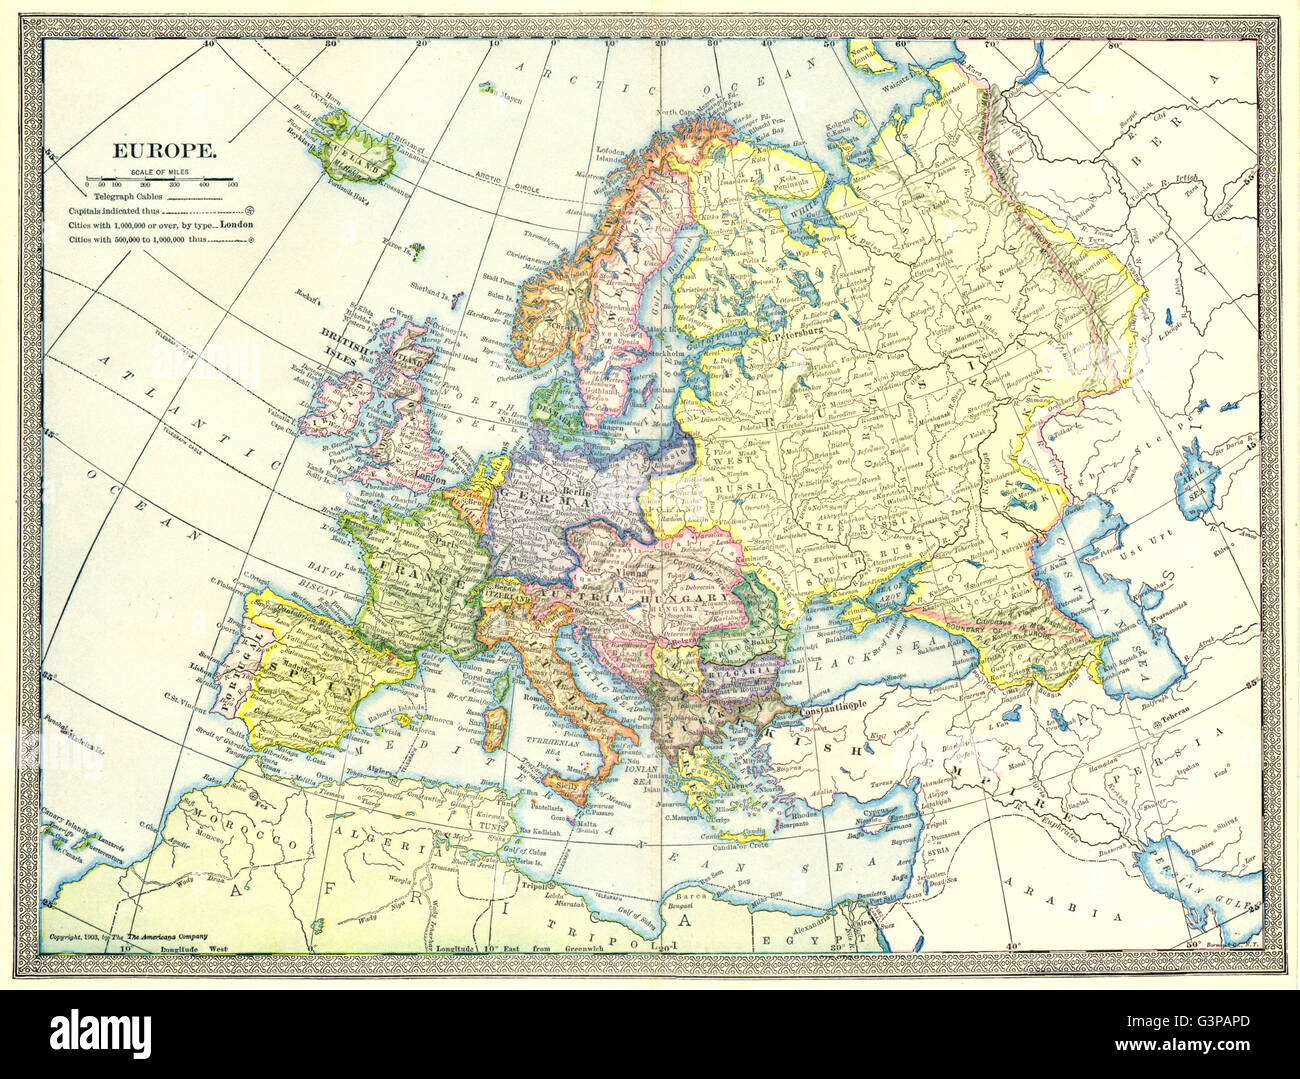 Europe Political Austriahungary Turkey In Europe 1907 Antique – Turkey on a Map of Europe